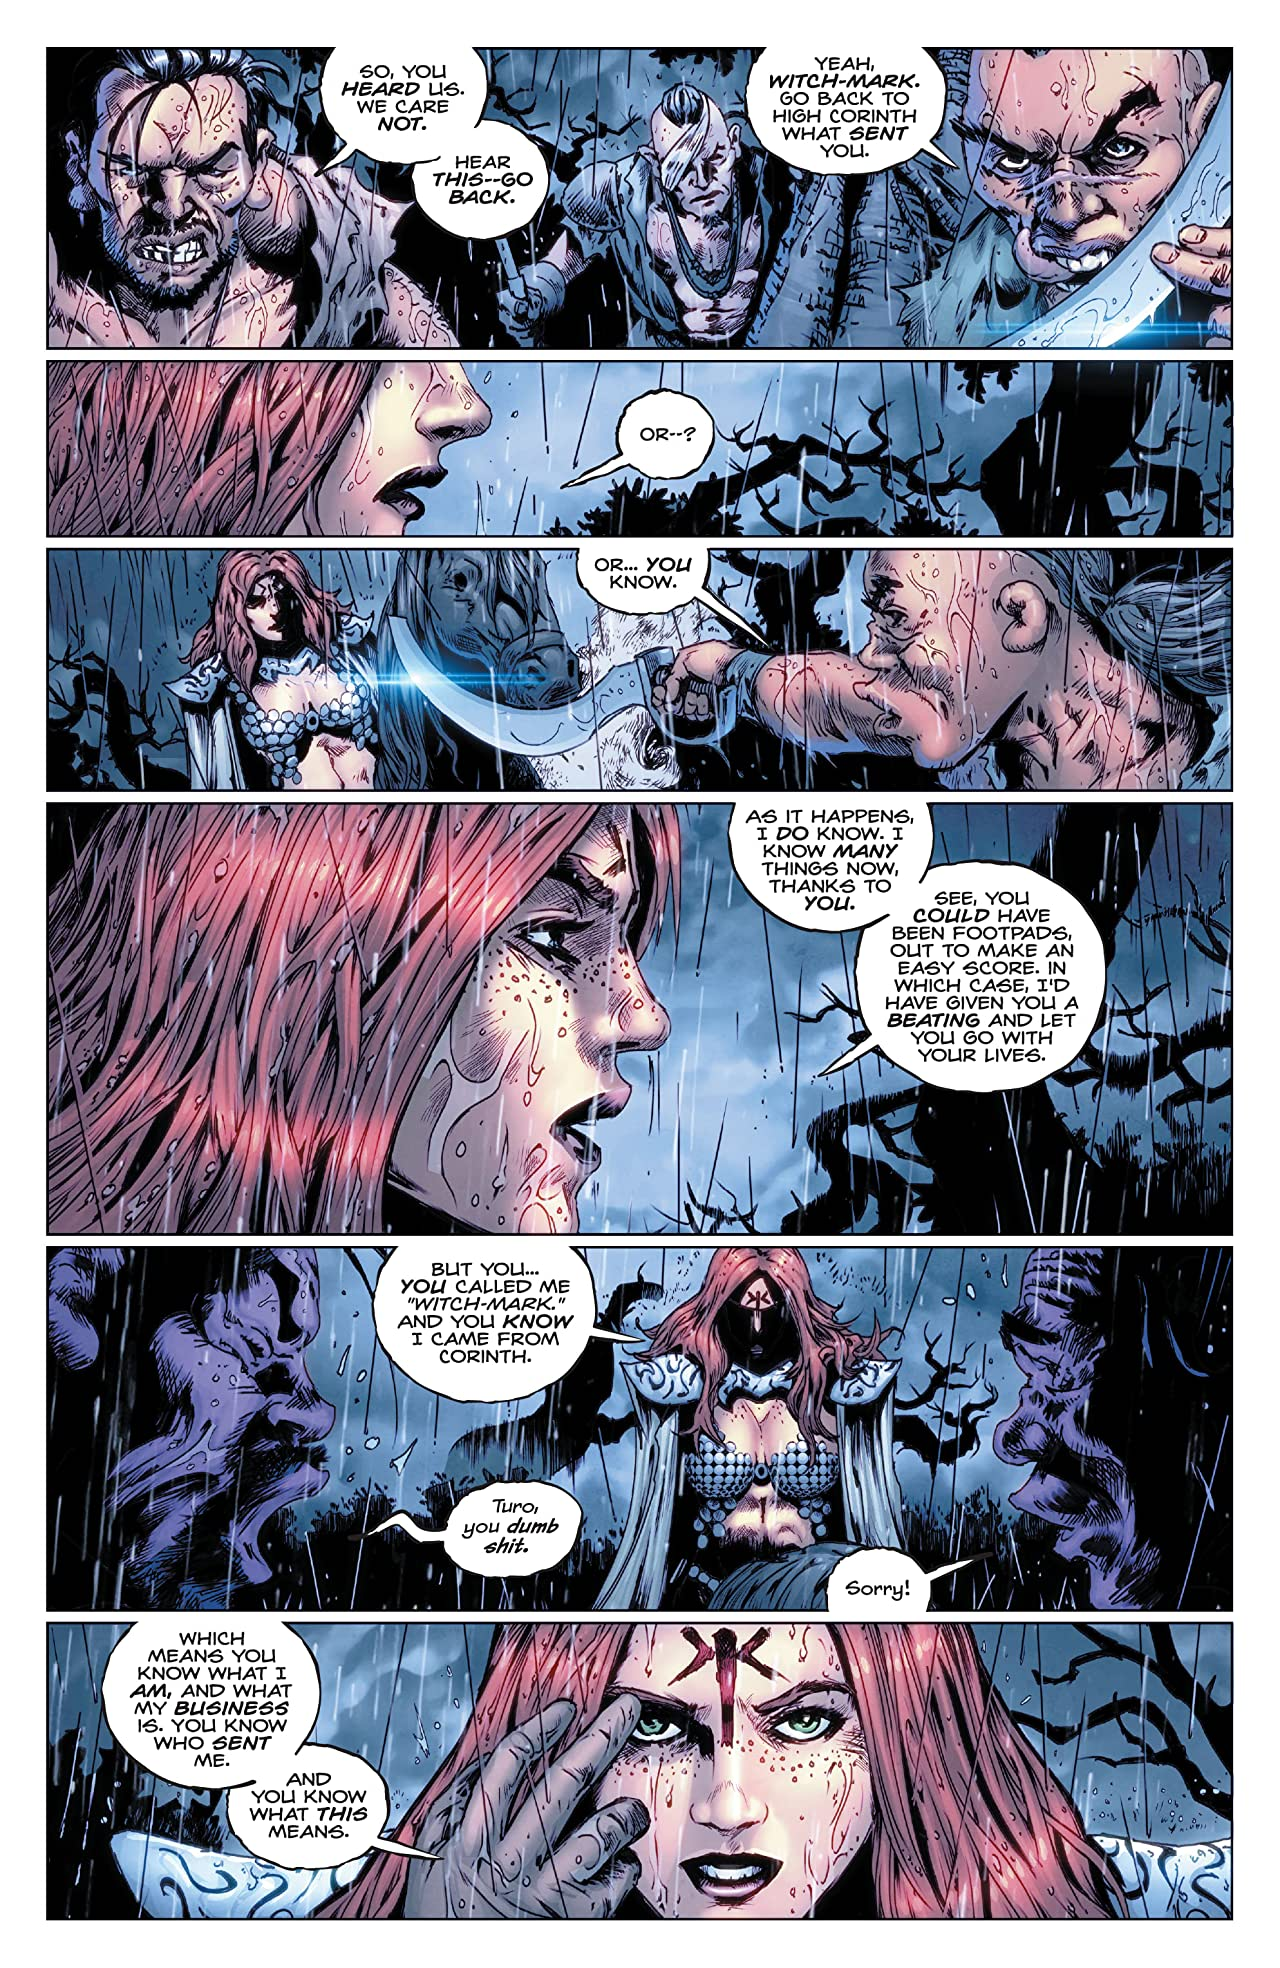 Red Sonja: The Super Powers #1